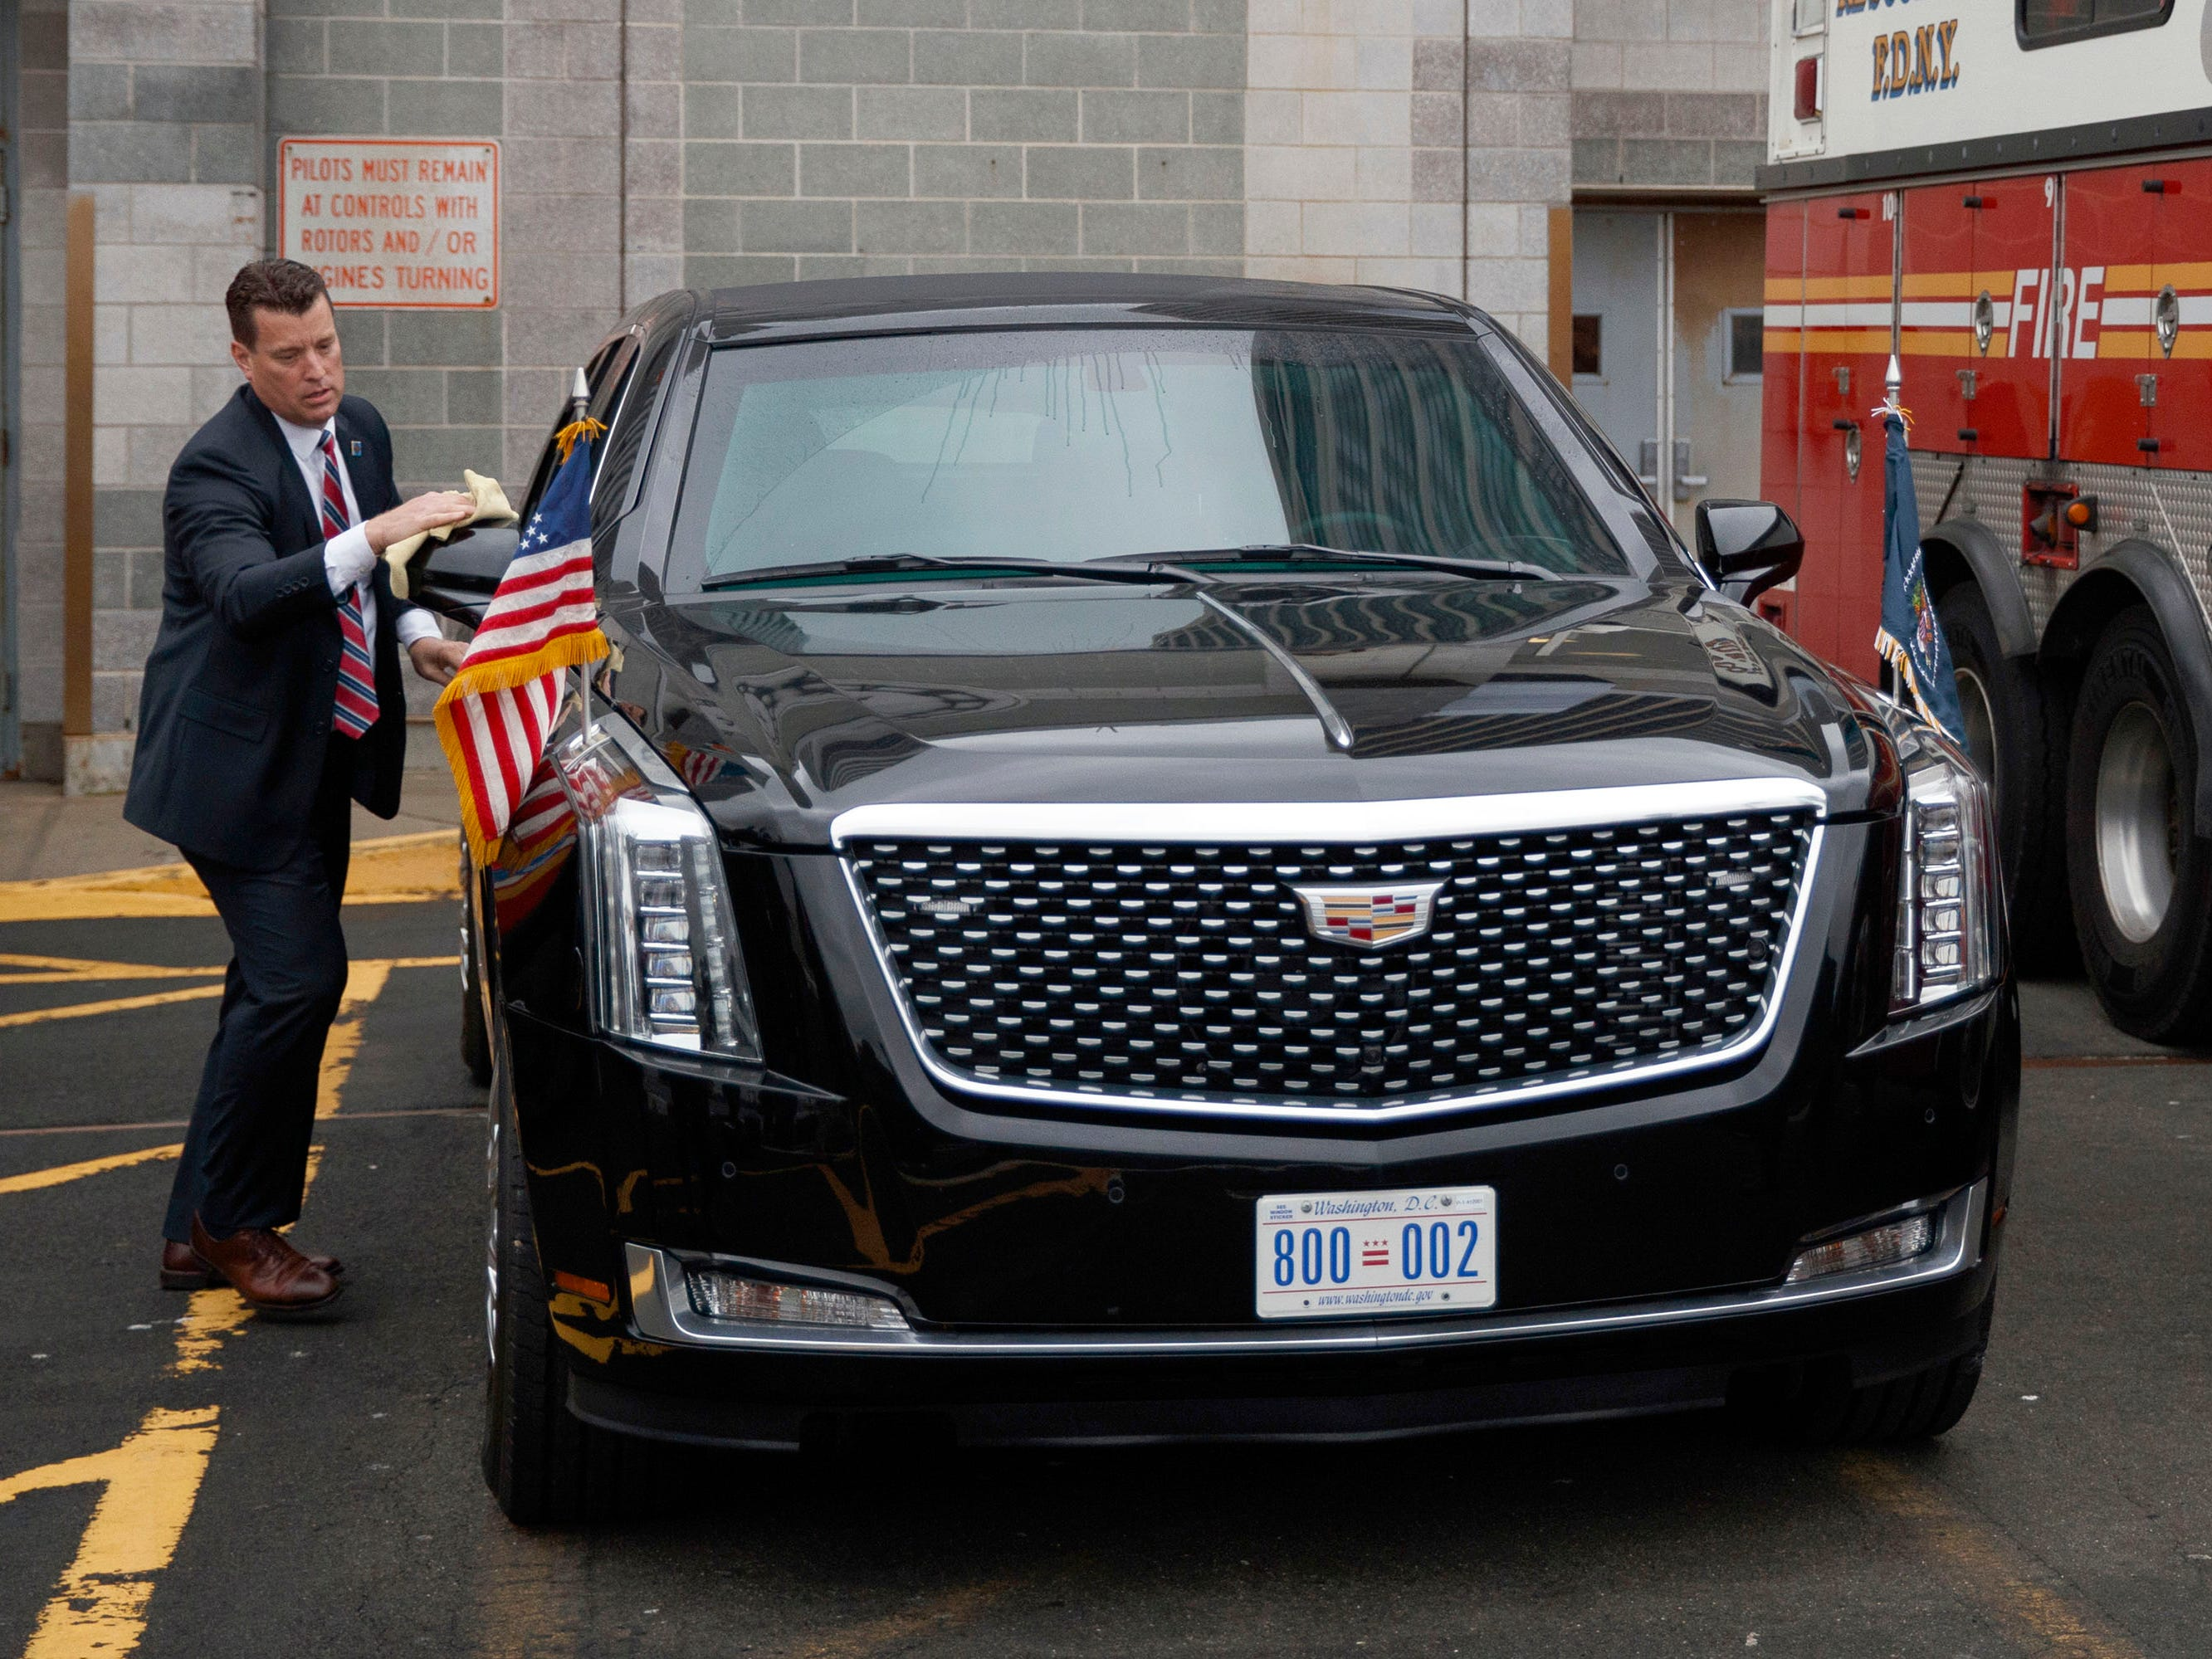 The new presidential limousine by Cadillac on Sept. 23, 2018 in New York. A Secret Service agent cleans the limousine before the arrival of Marine One carrying President Donald Trump at the Downtown Manhattan Heliport in New York.